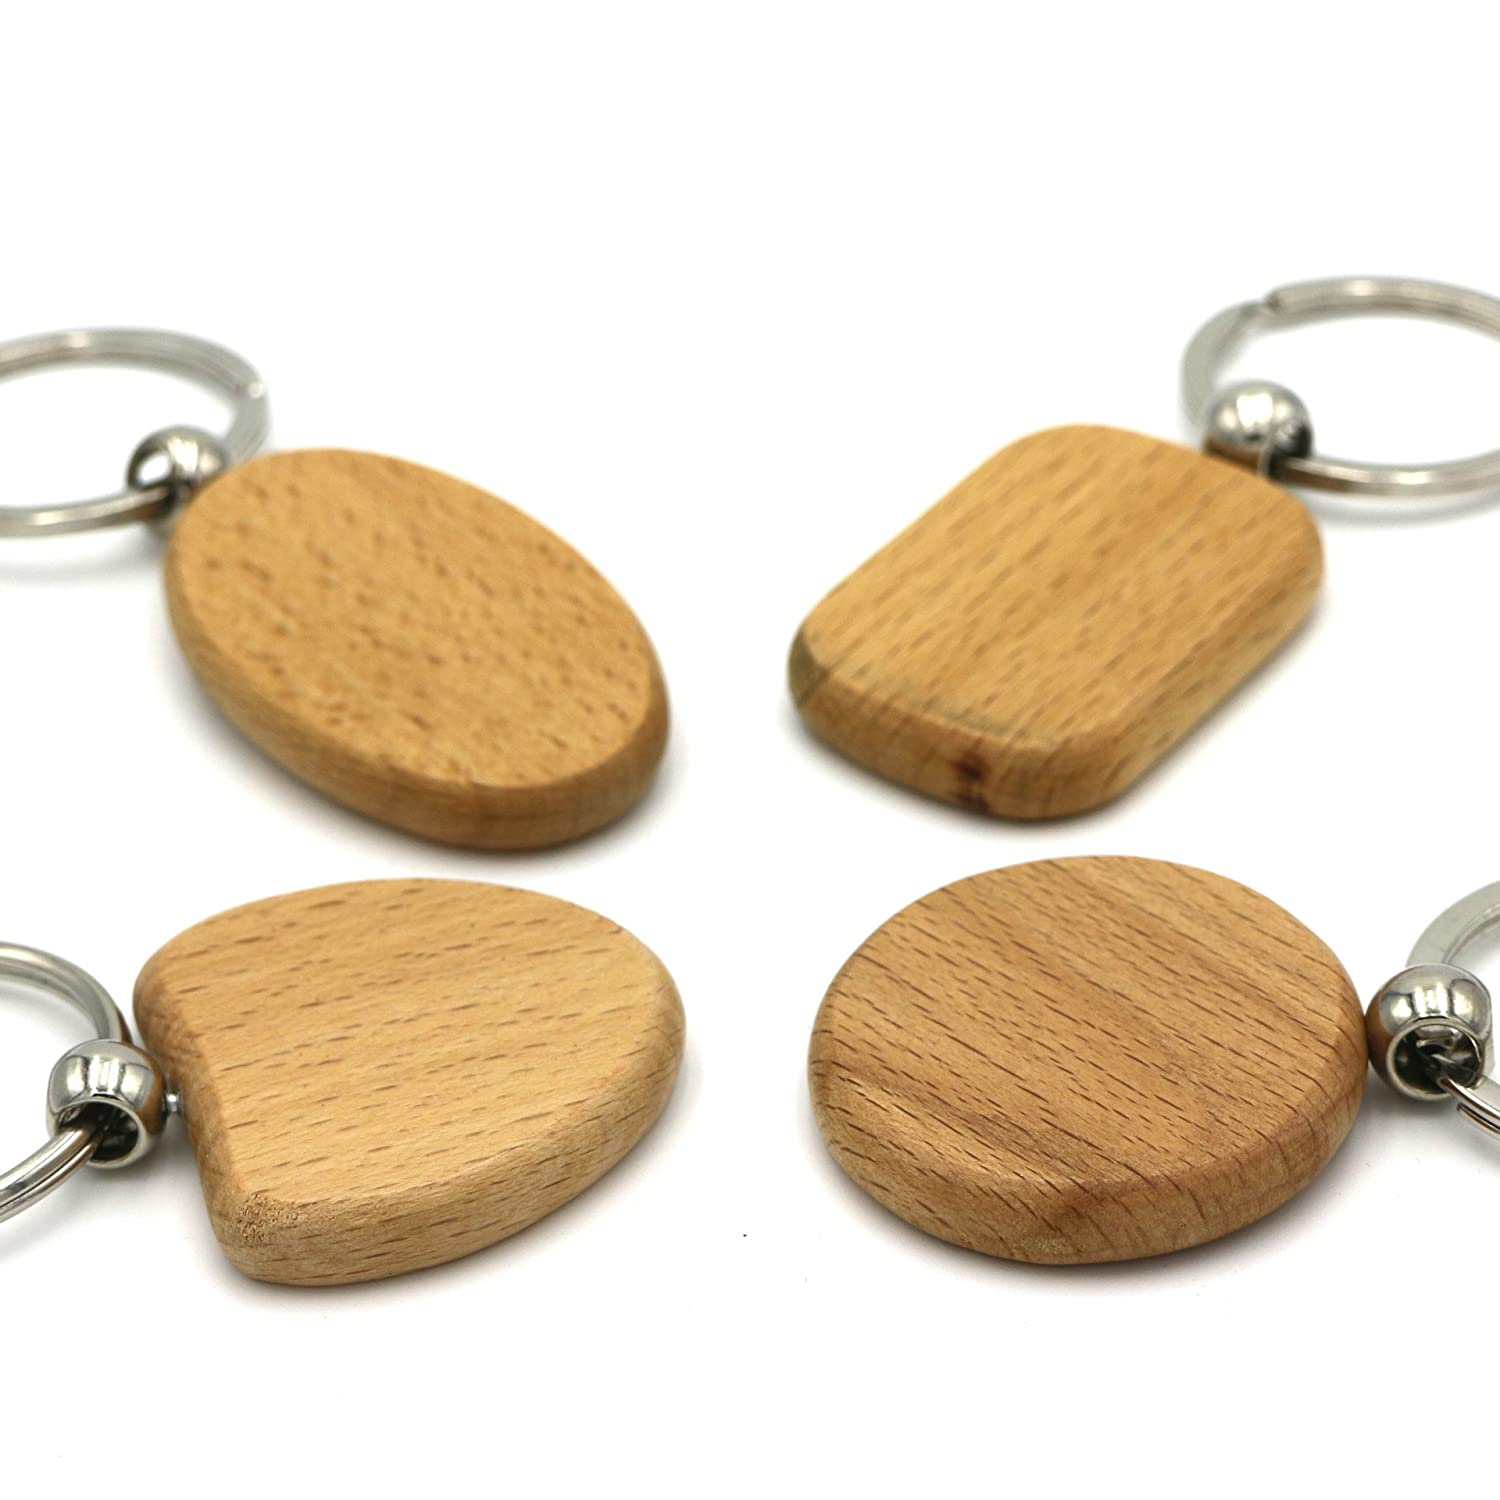 Kimter DIY Blank Wooden Key Chain Personalized EDC Wood Keychains Best Gift  Mix 4 Shape Pack Of 10pcs